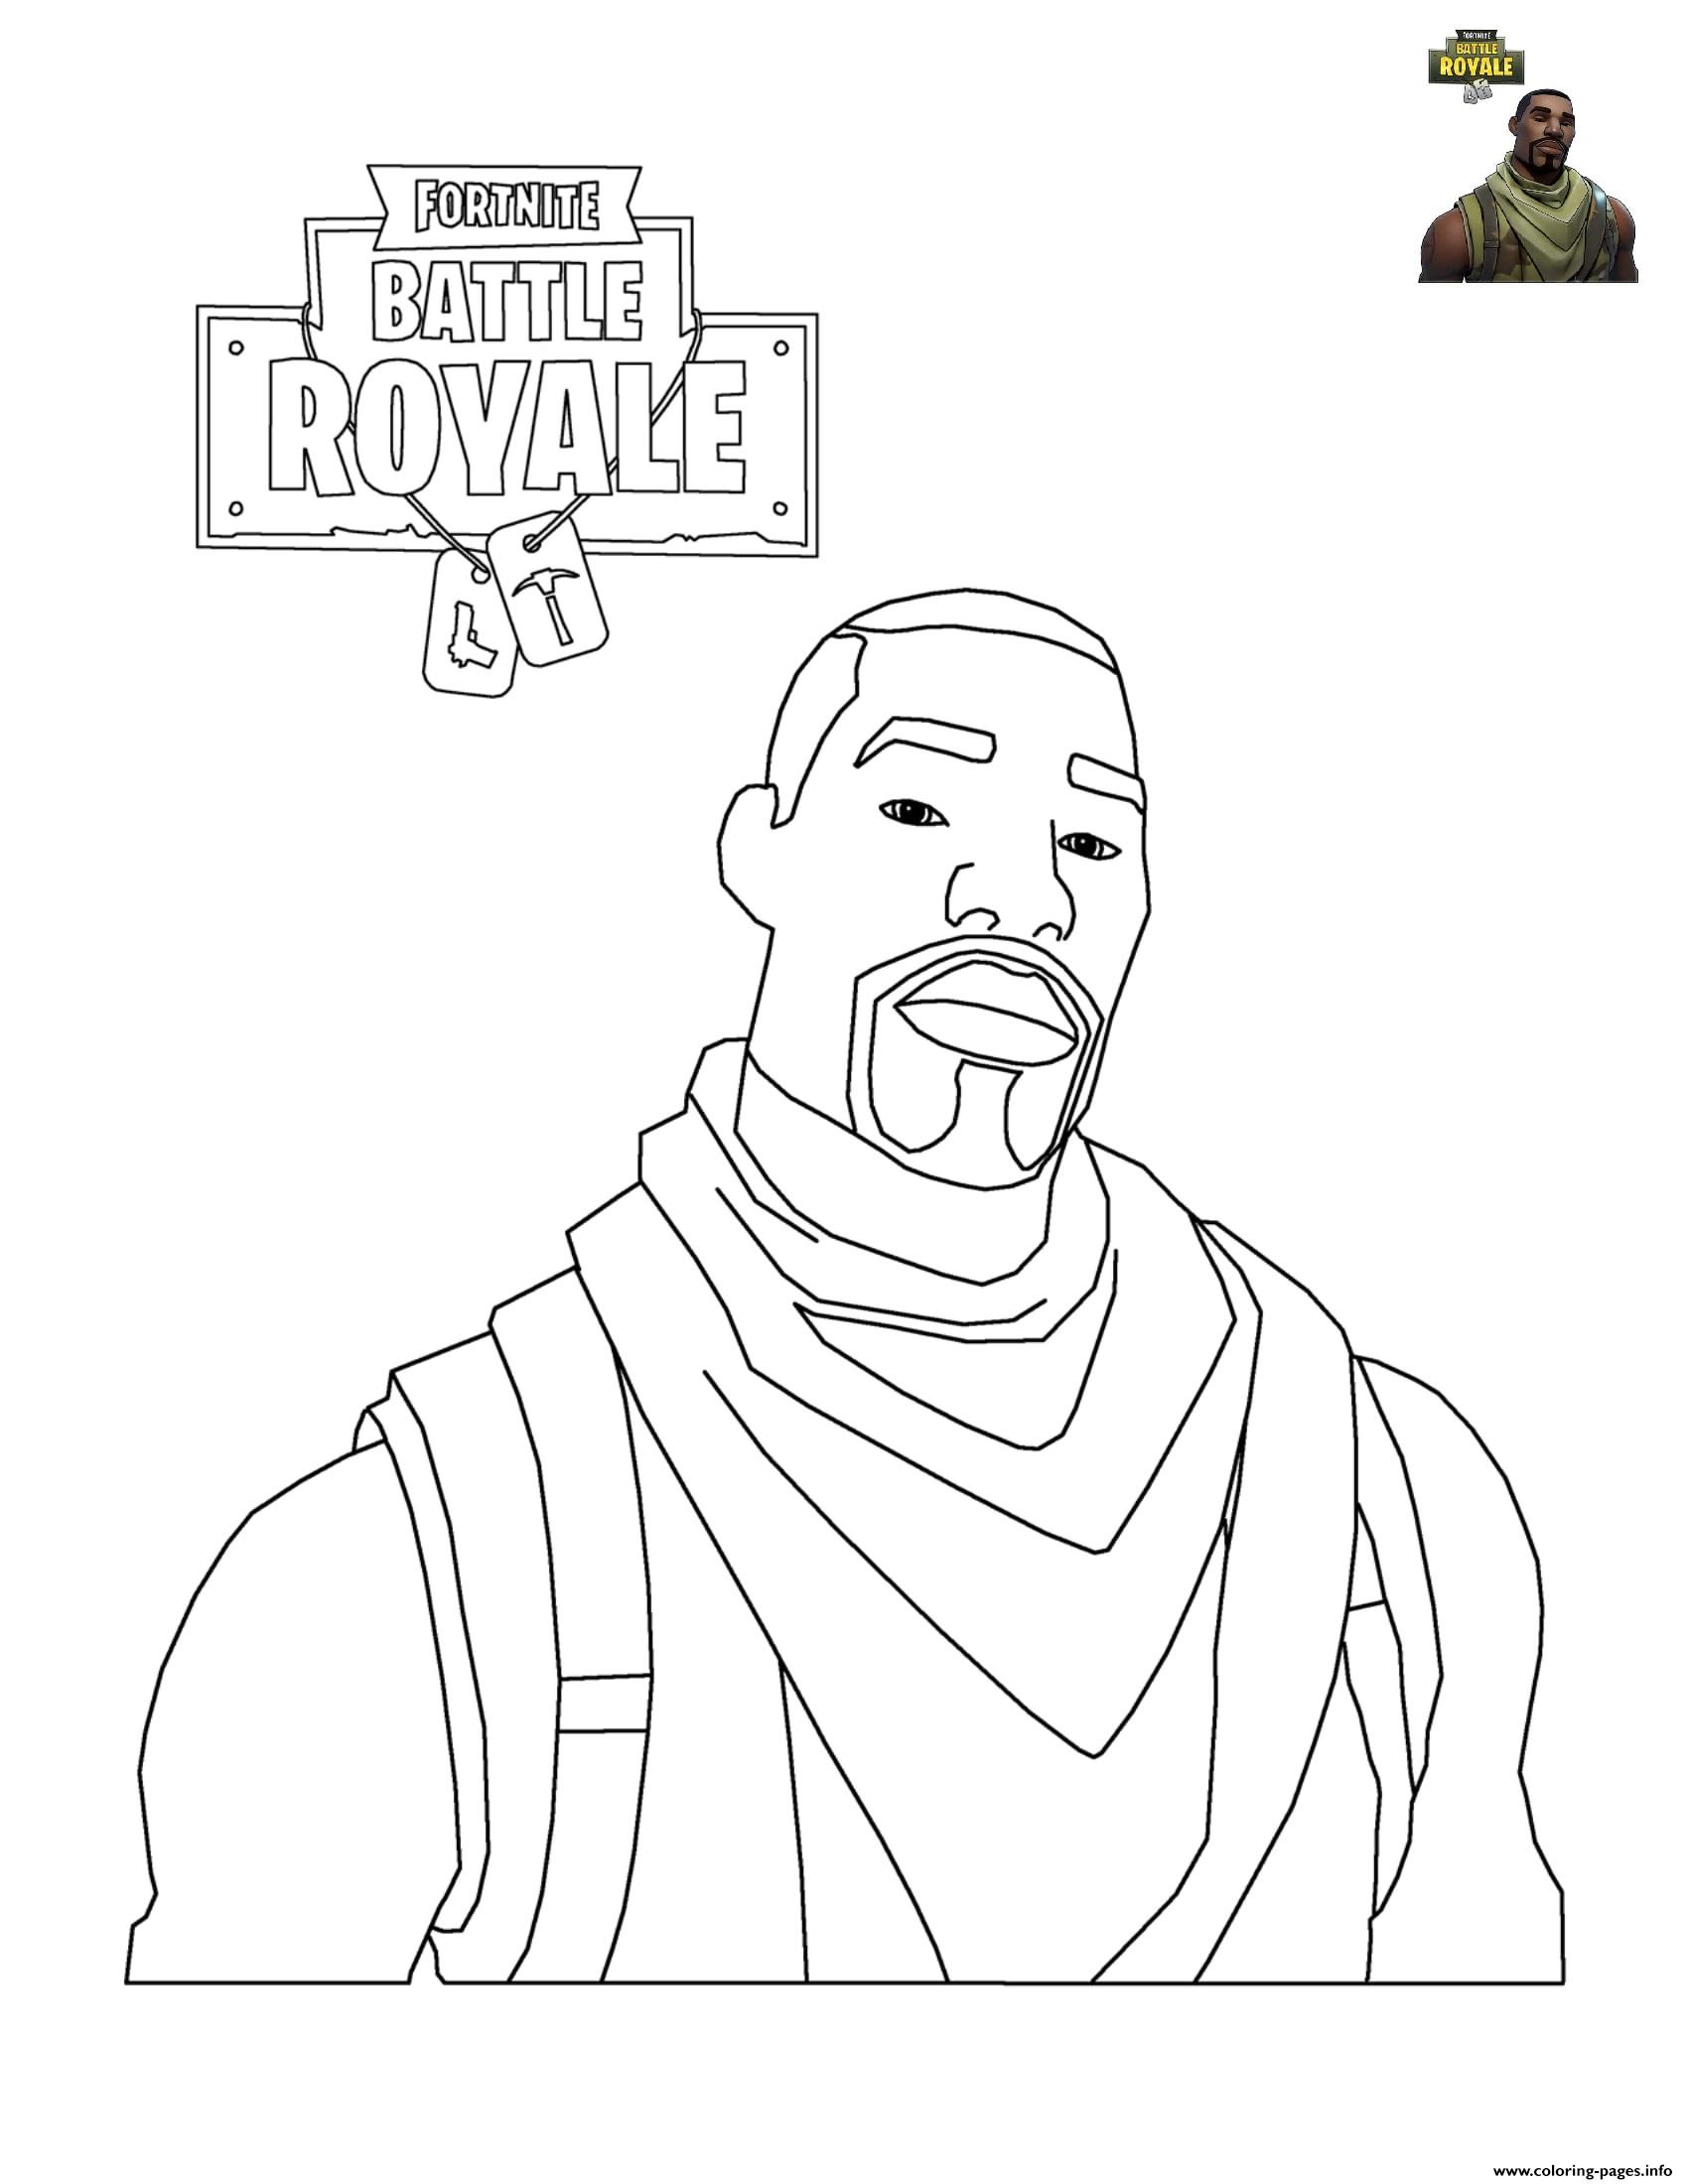 Fortnite Character 2 Coloring Pages Printable